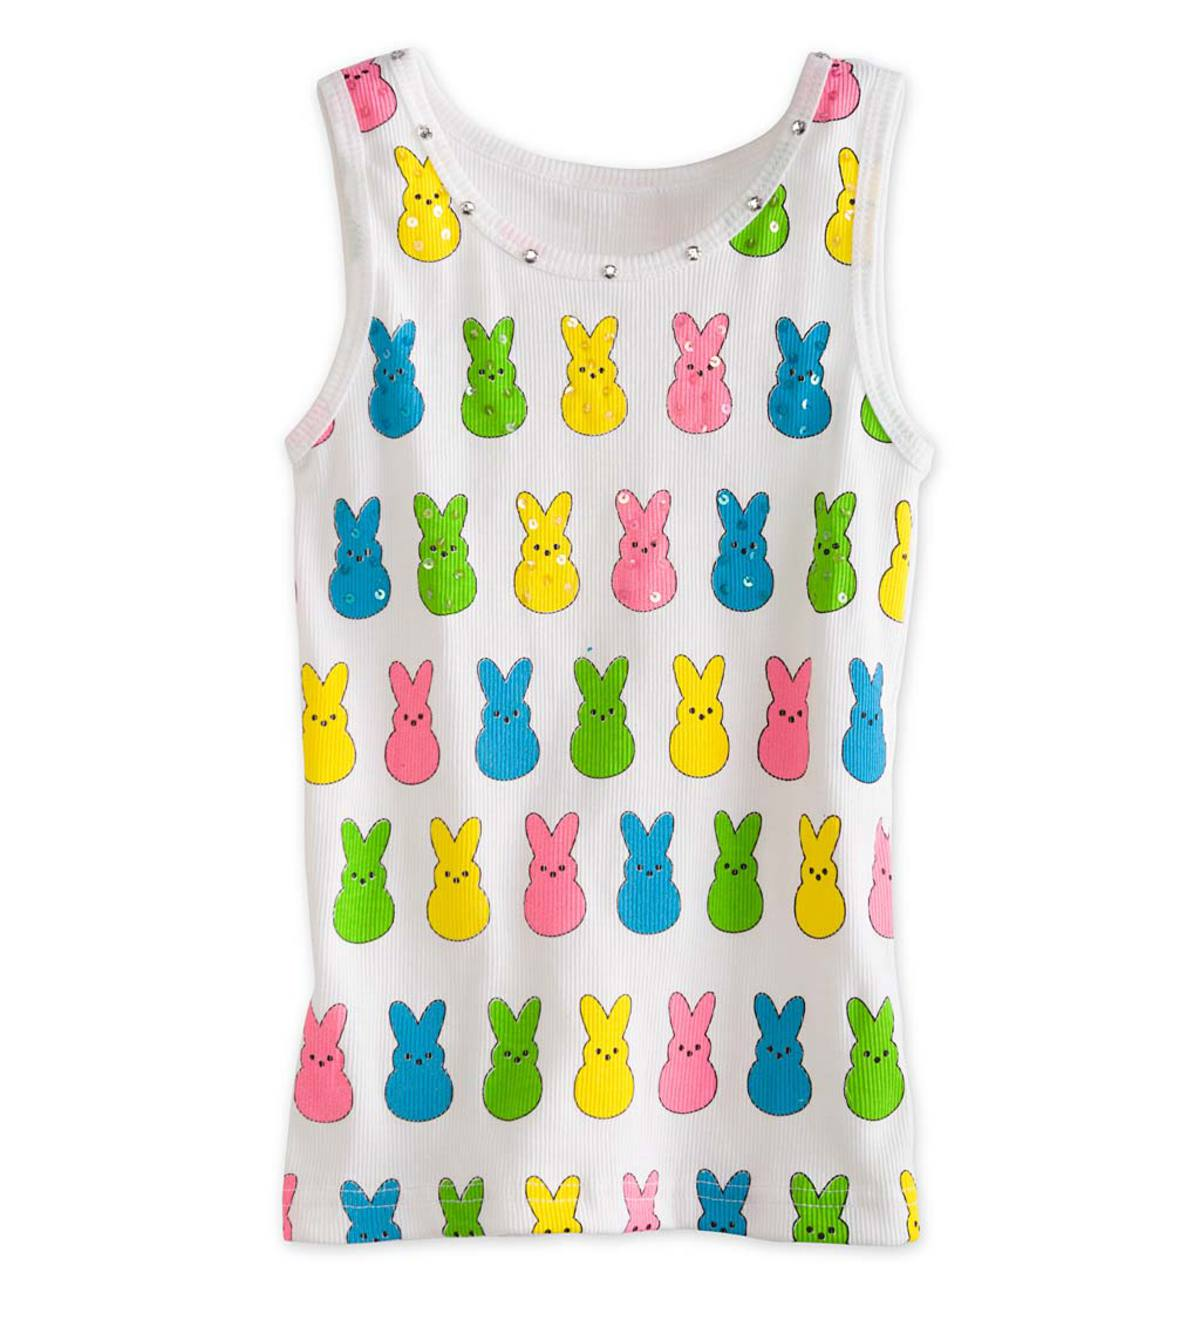 Colorful Bunny Tank - White - 5